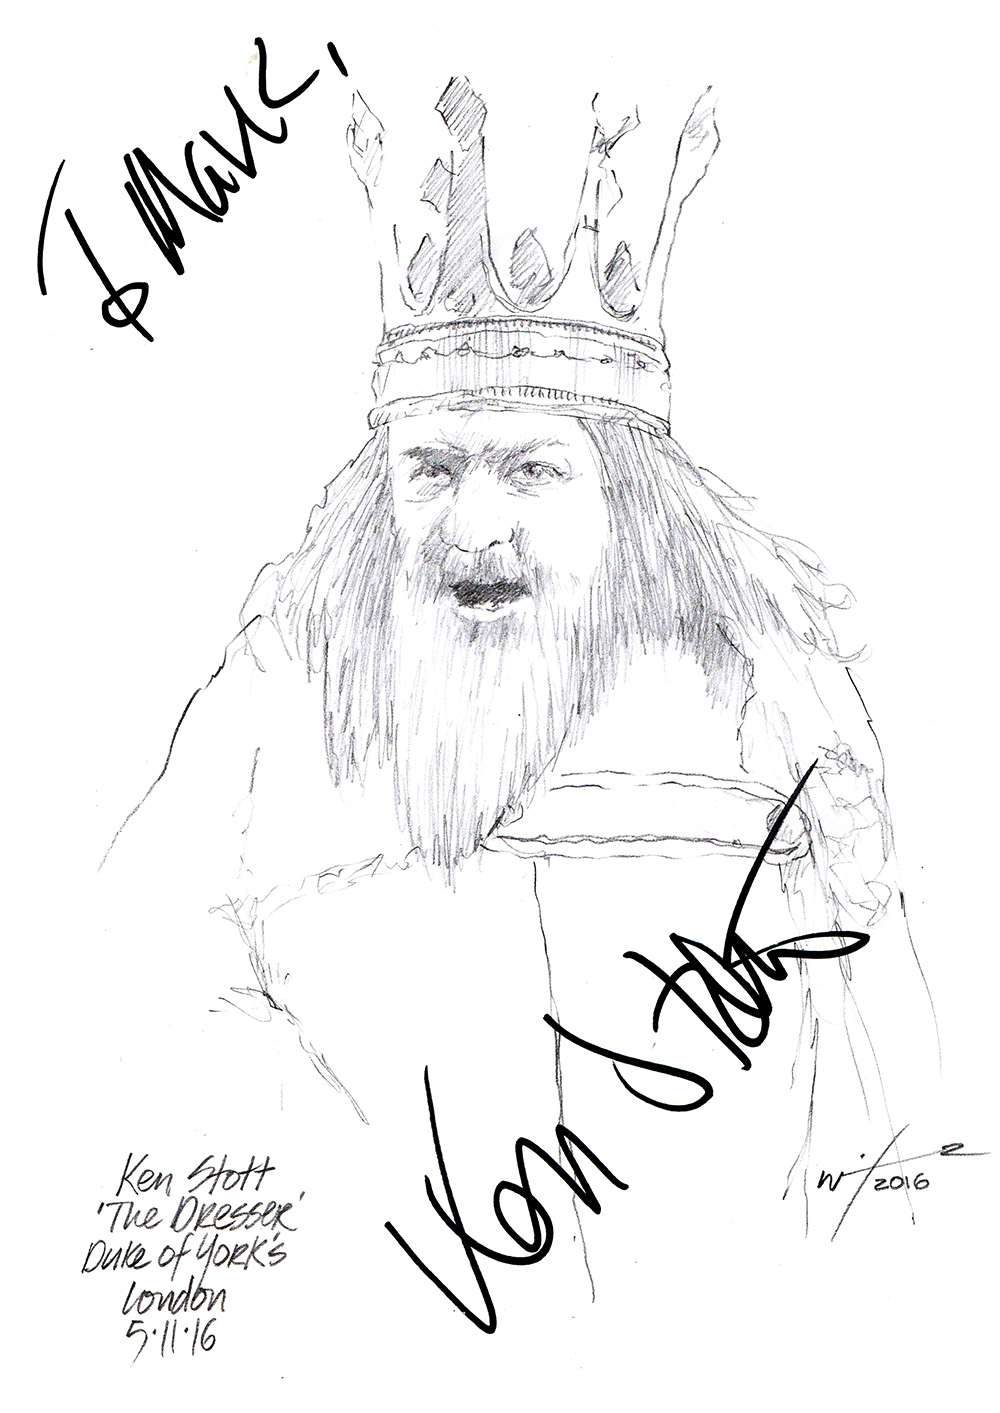 Revival Of A Fading Handloom Tradition The Khun: Drawing: Ken Stott As King Lear In The Dresser